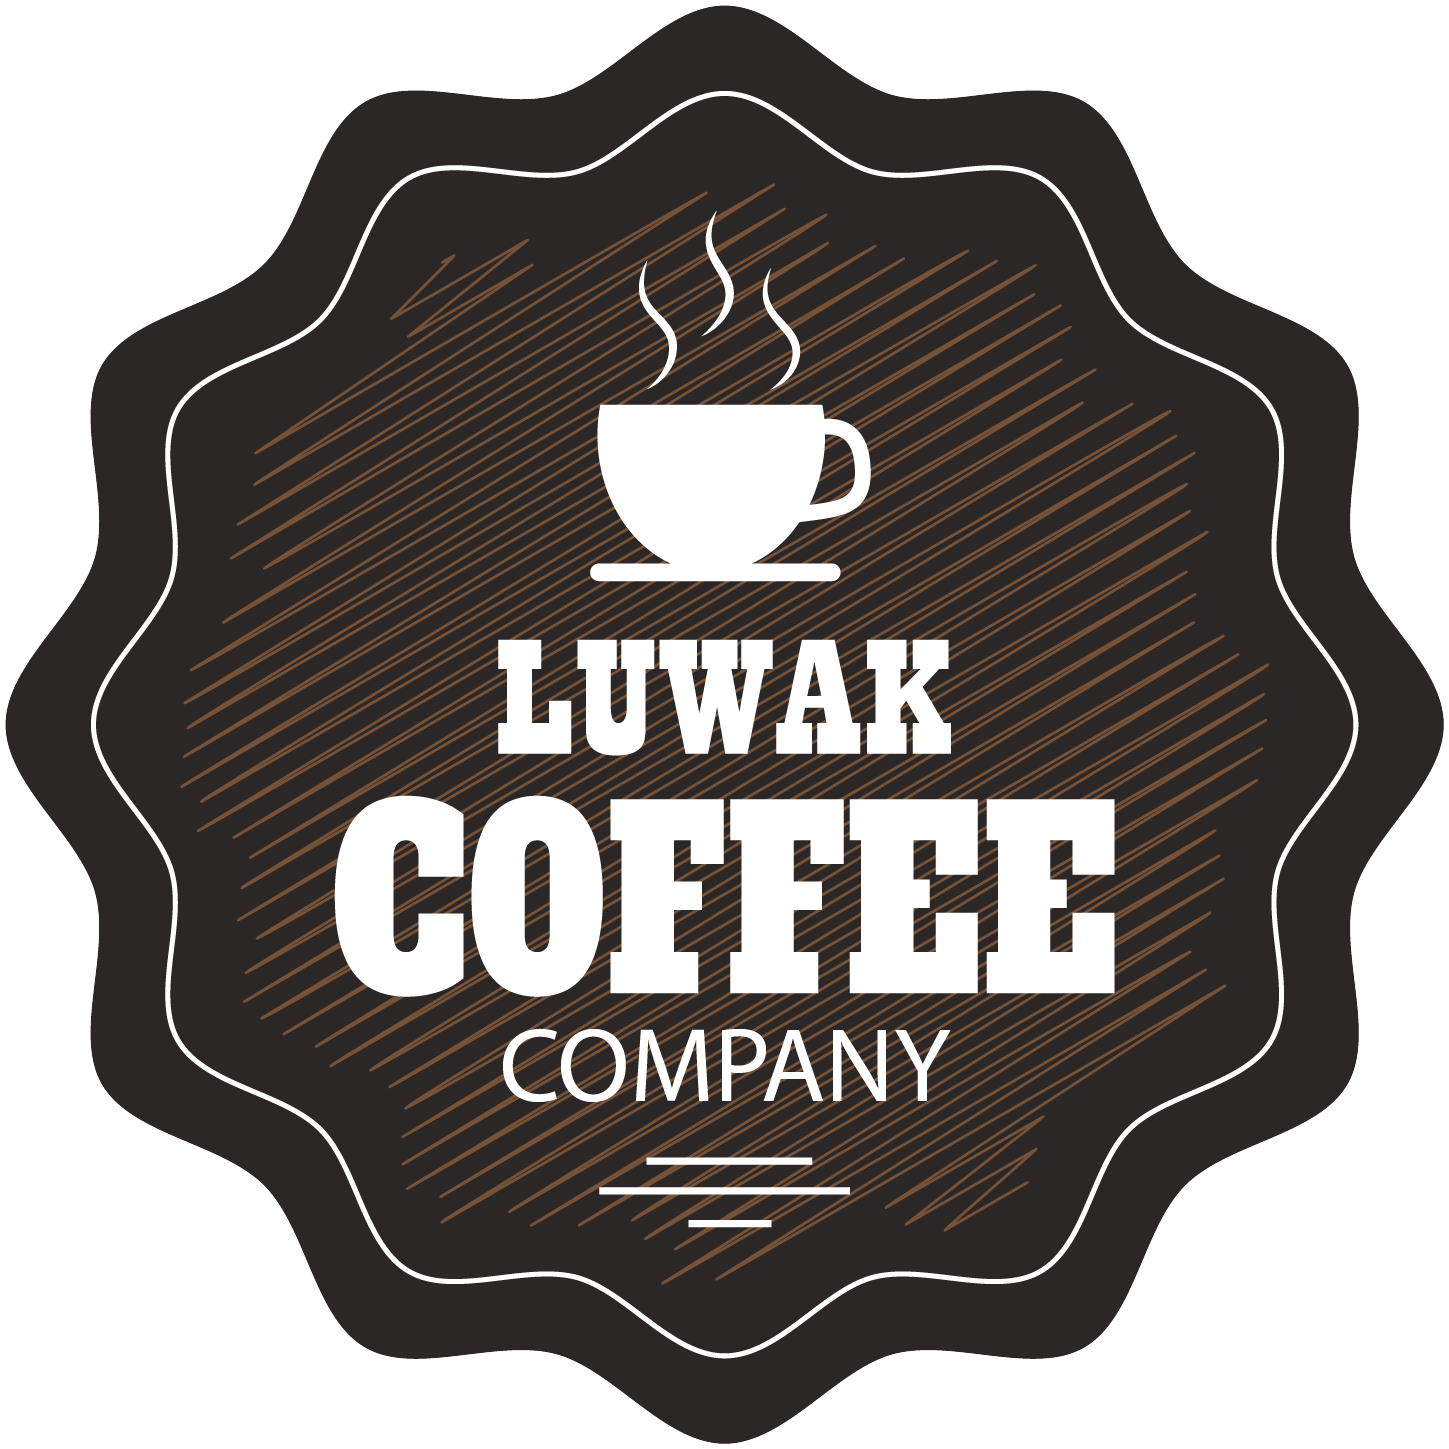 Luwak Coffee Company